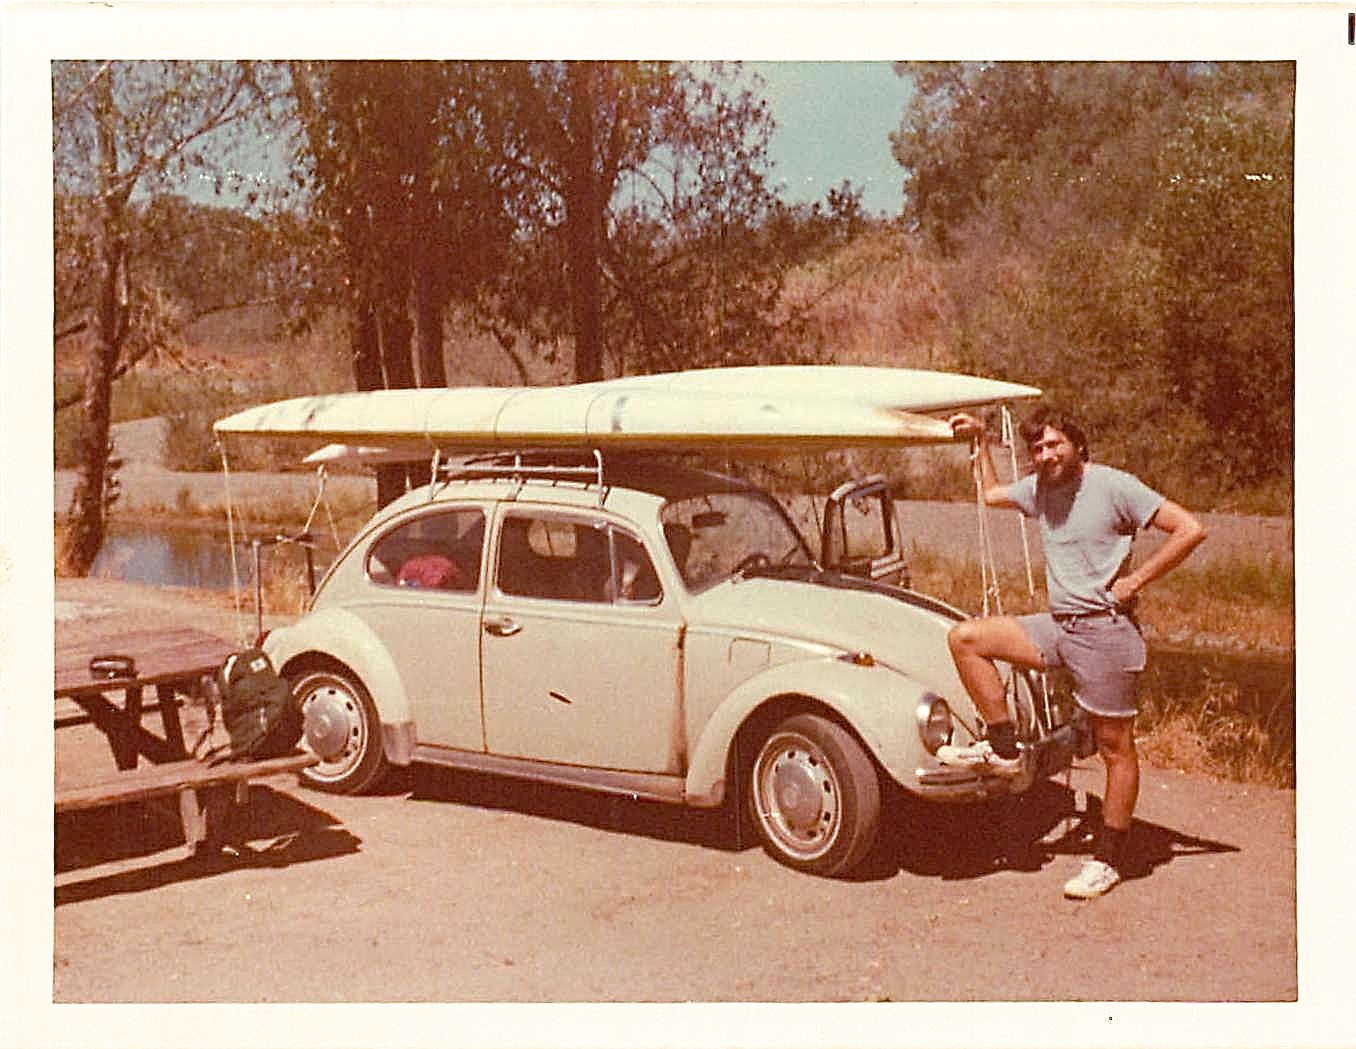 Kayaking on the Russian River, 1977 John, his car Jessica, and the kayaks